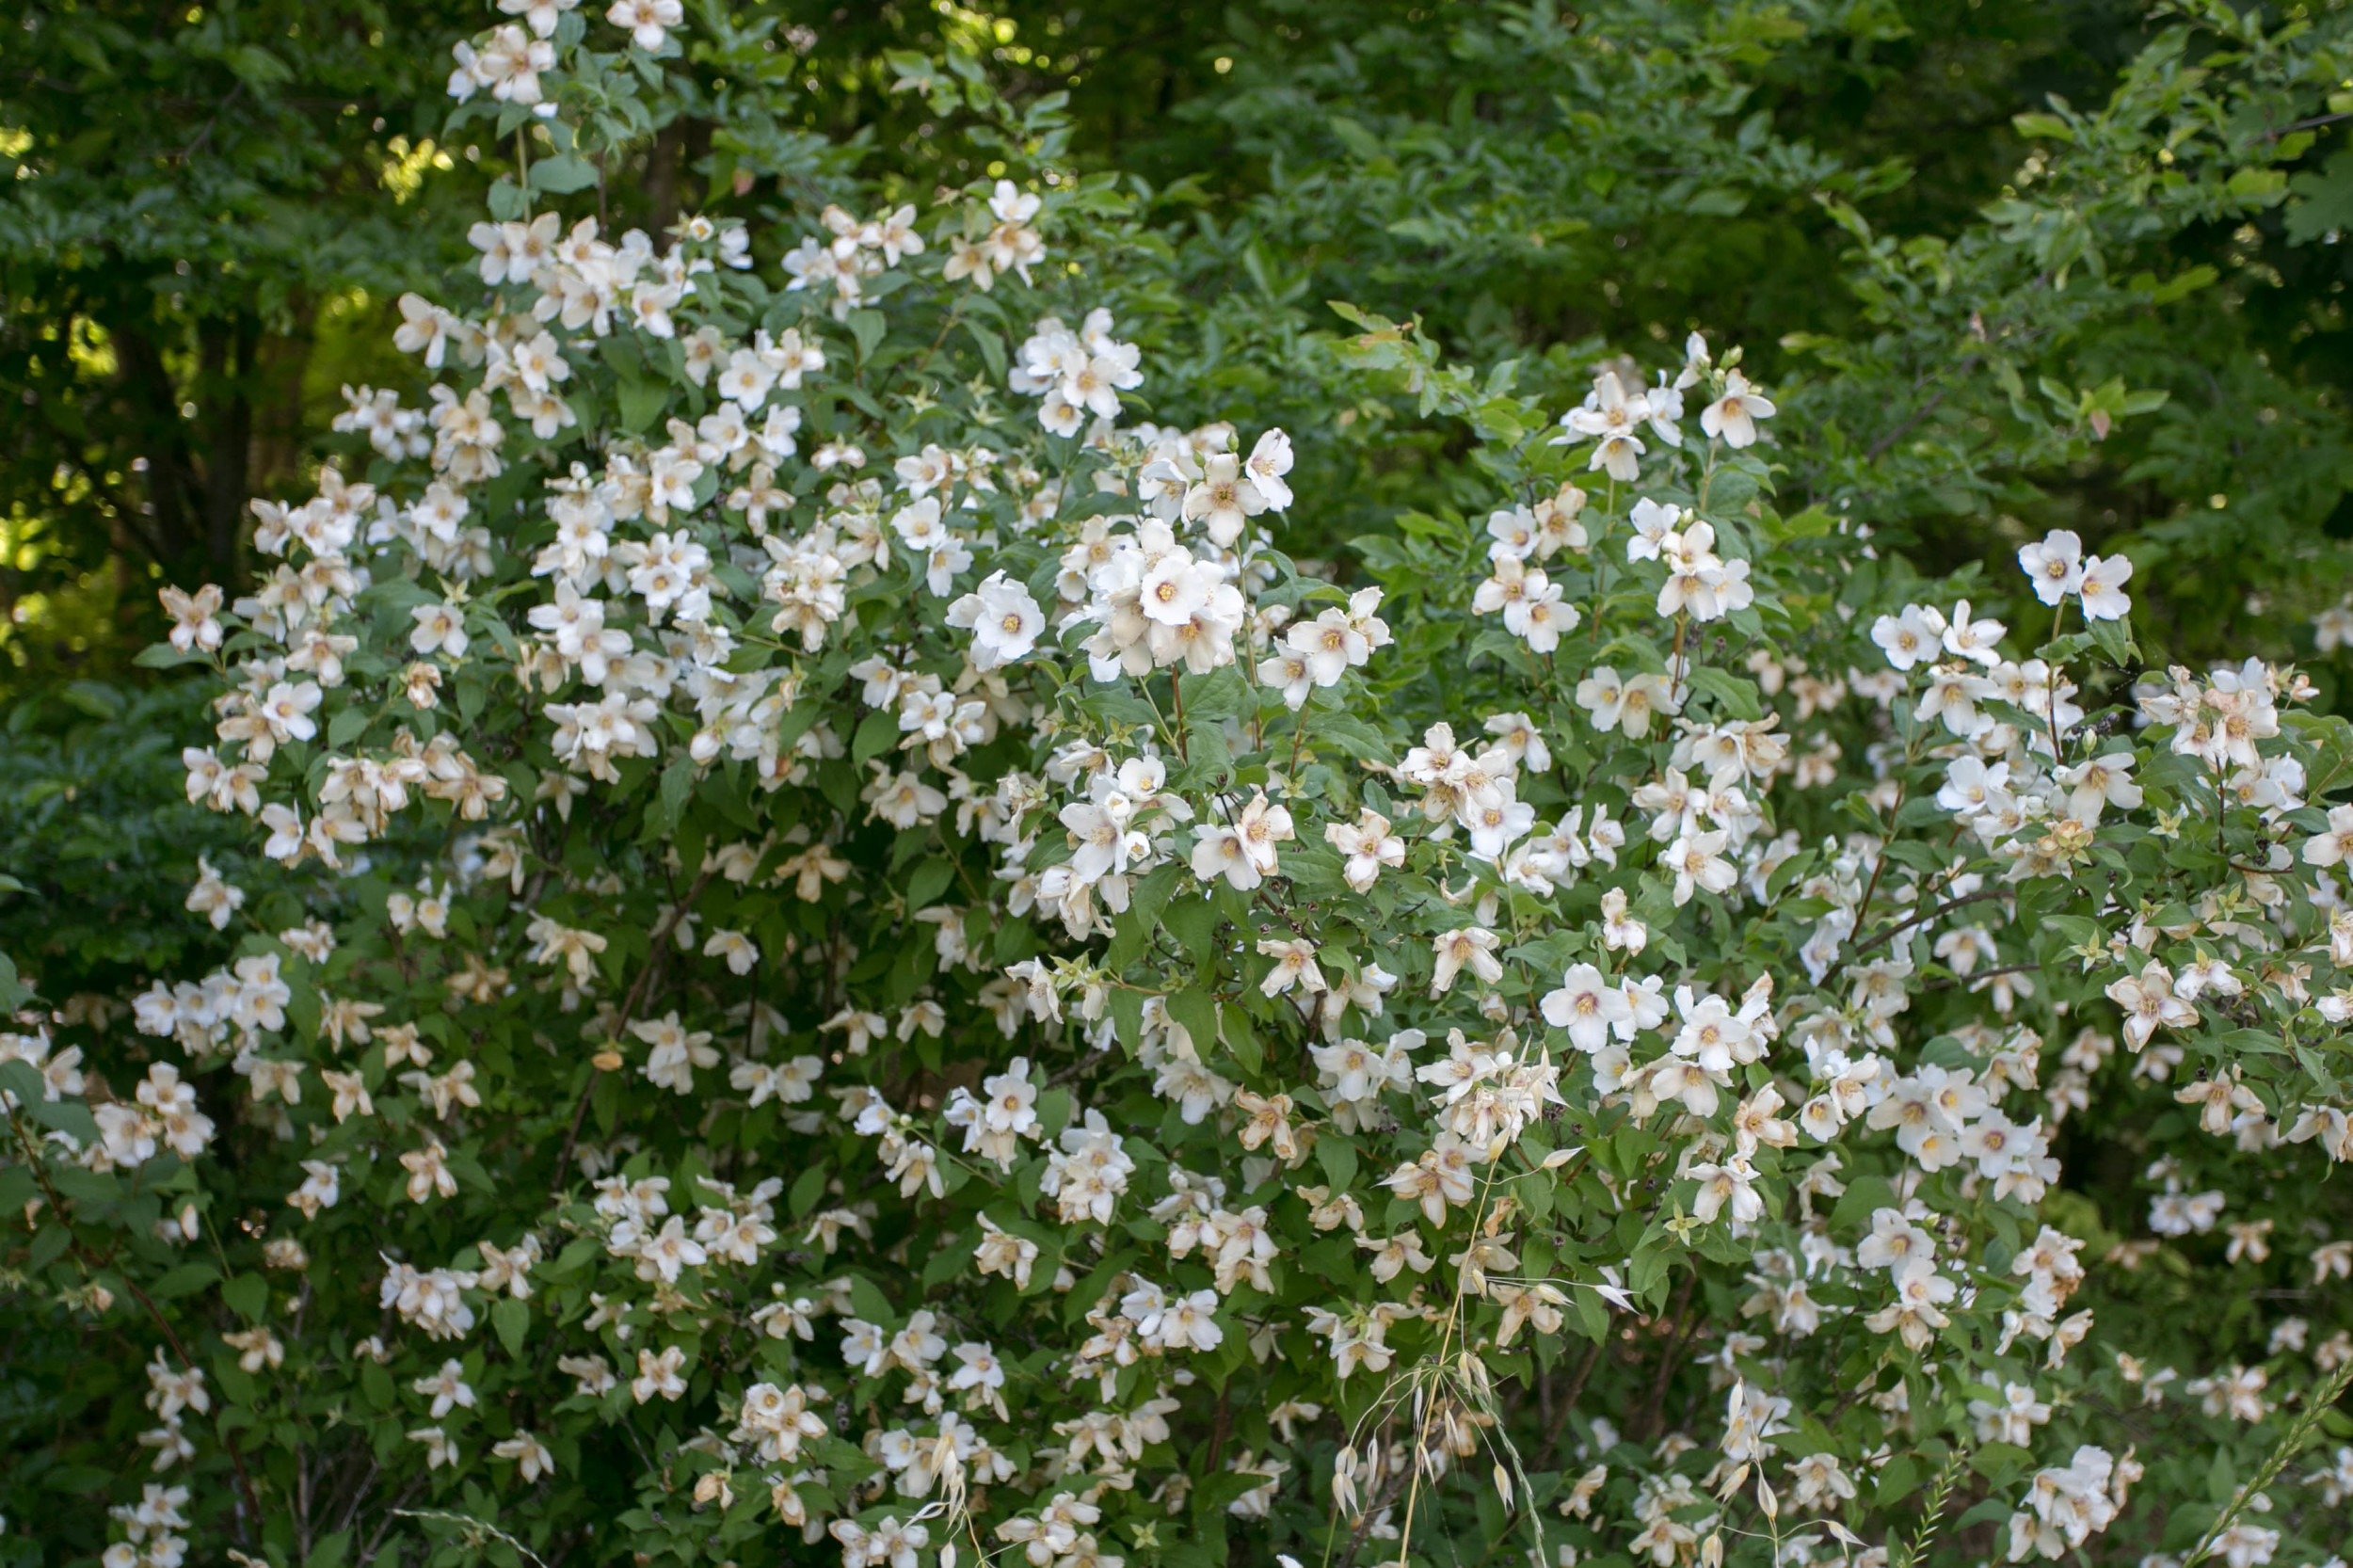 Lewis' Mock Orange (Philadelphus lewisii). The flowers have a heavy, sweet scent similar to orange blossoms with a hint of pineapple.